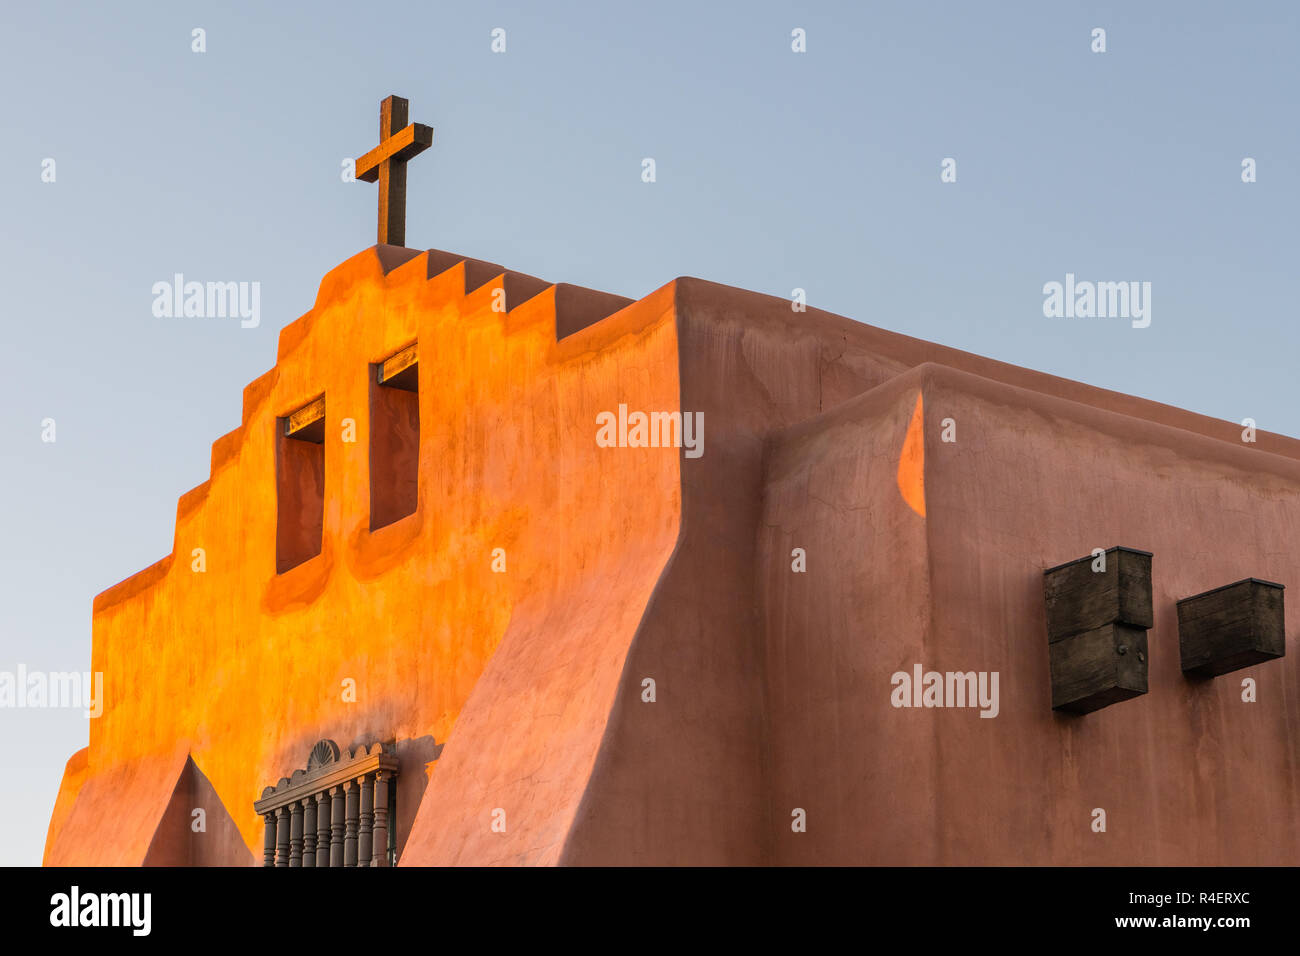 Multiple Dwellings Relief >> American Red Cross Building Stock Photos & American Red Cross Building Stock Images - Alamy